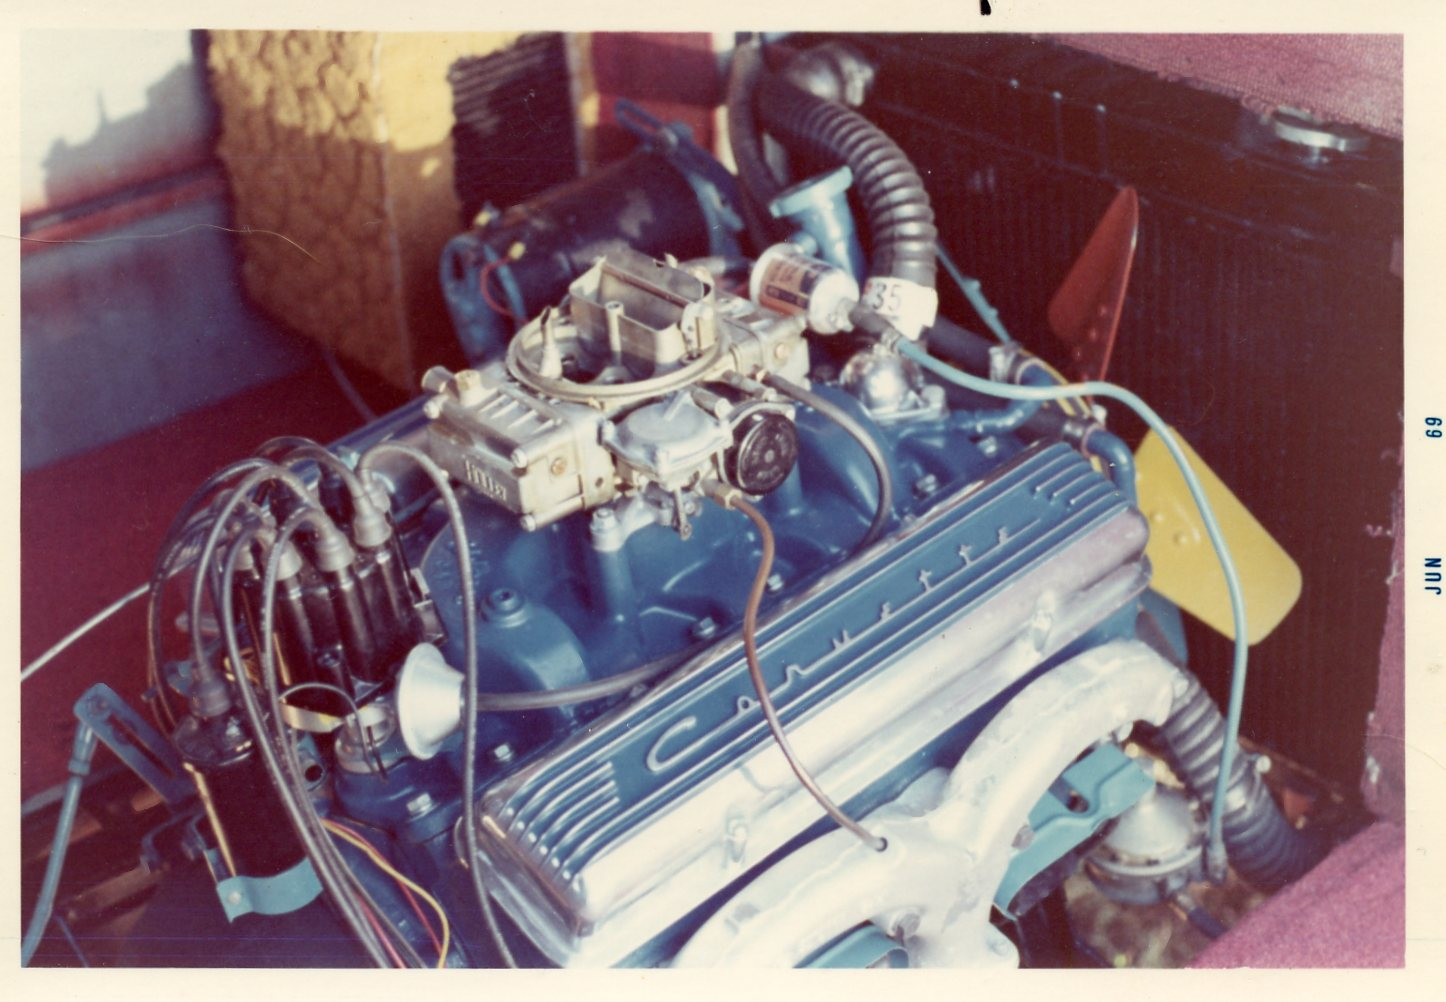 Click image for larger version  Name:VW Bus Engine 2 6-69.jpg Views:58 Size:212.6 KB ID:13970